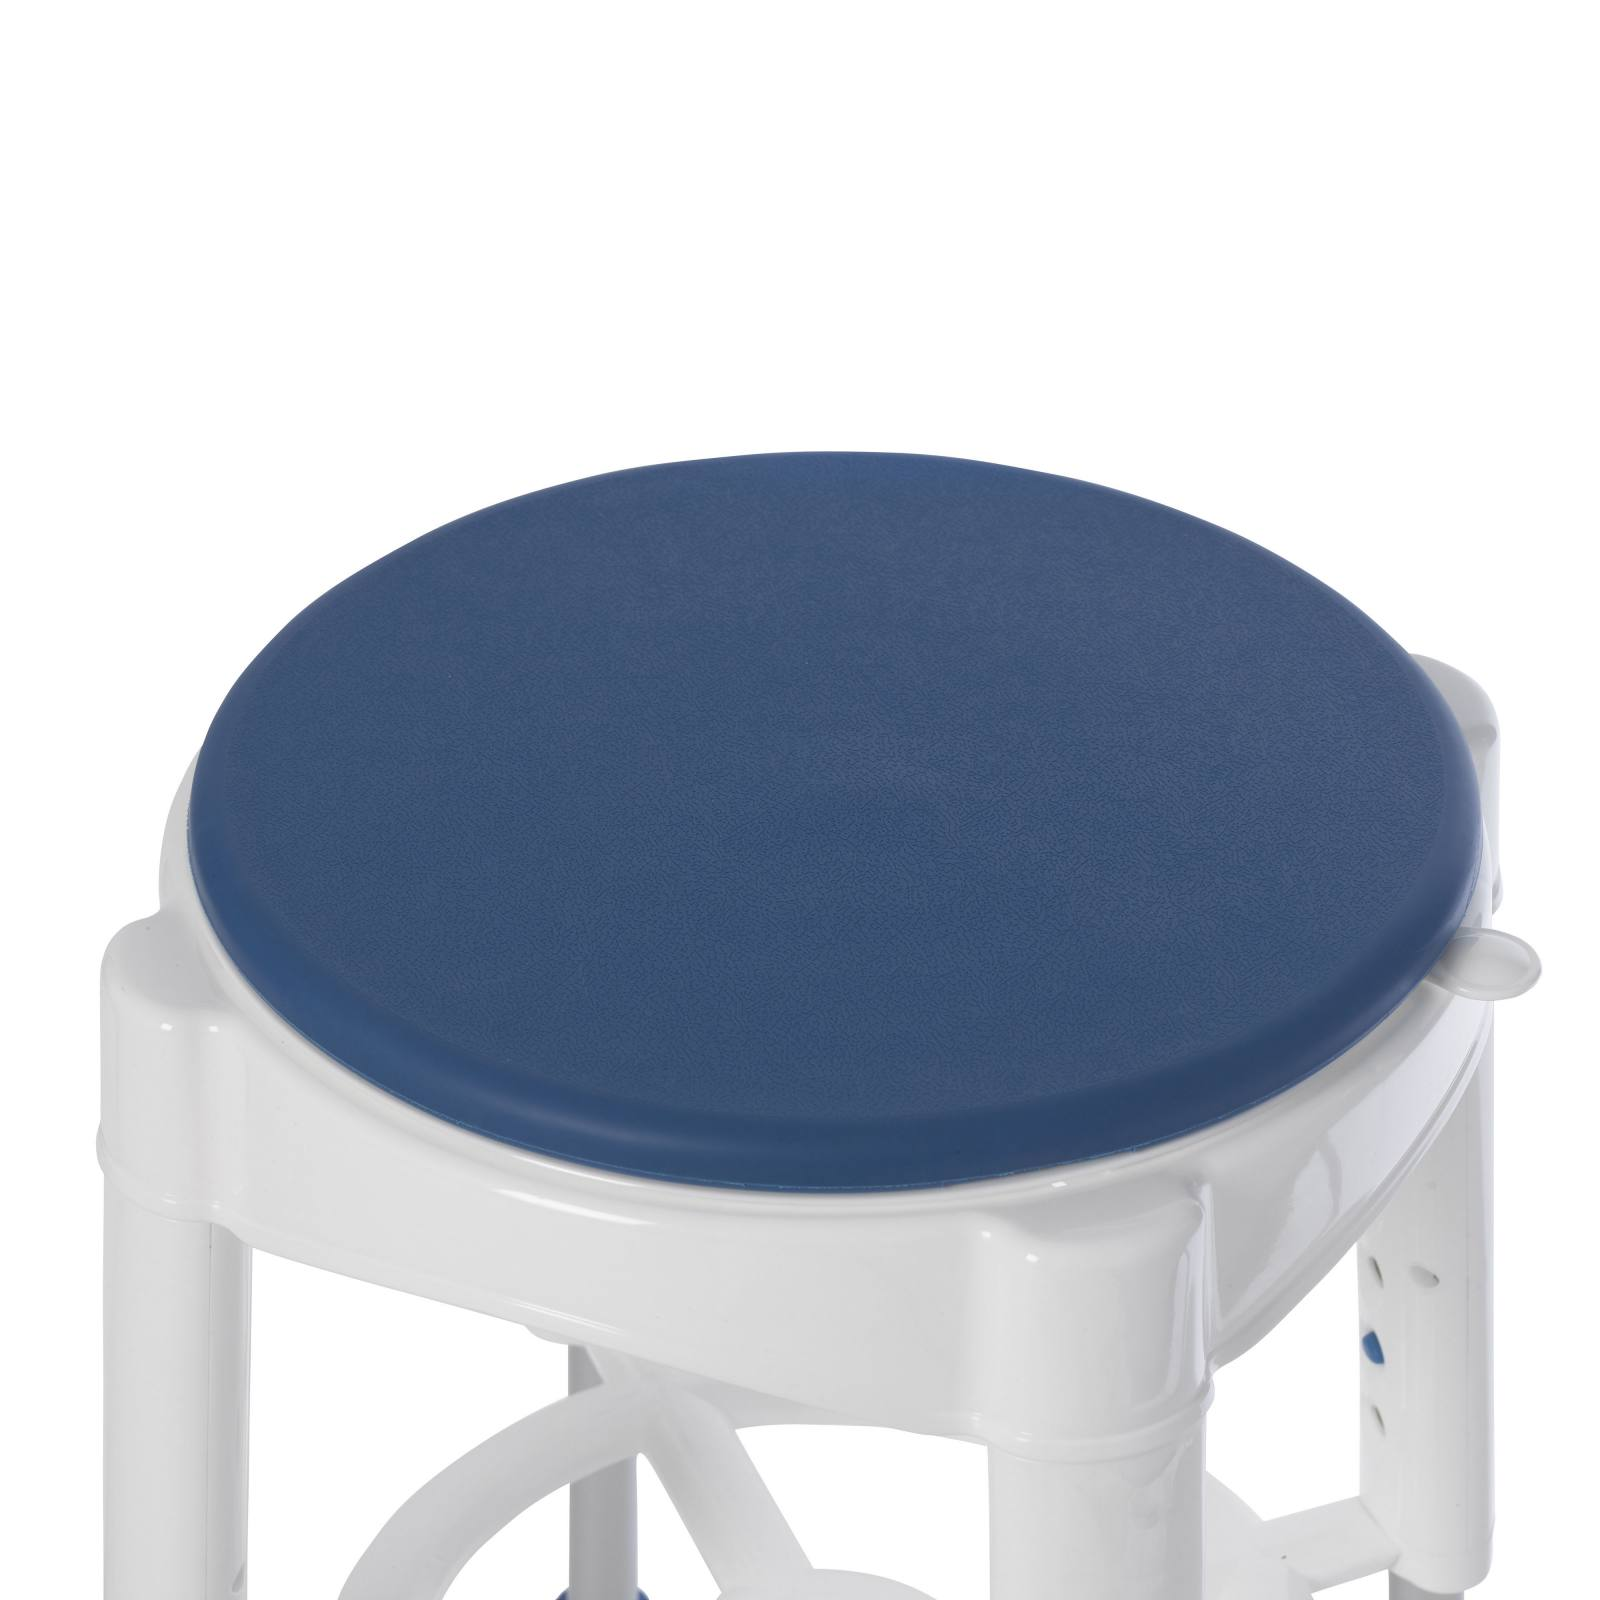 Drive Bathroom Safety Swivel Seat Shower Stool from LIFECARE MEDICAL